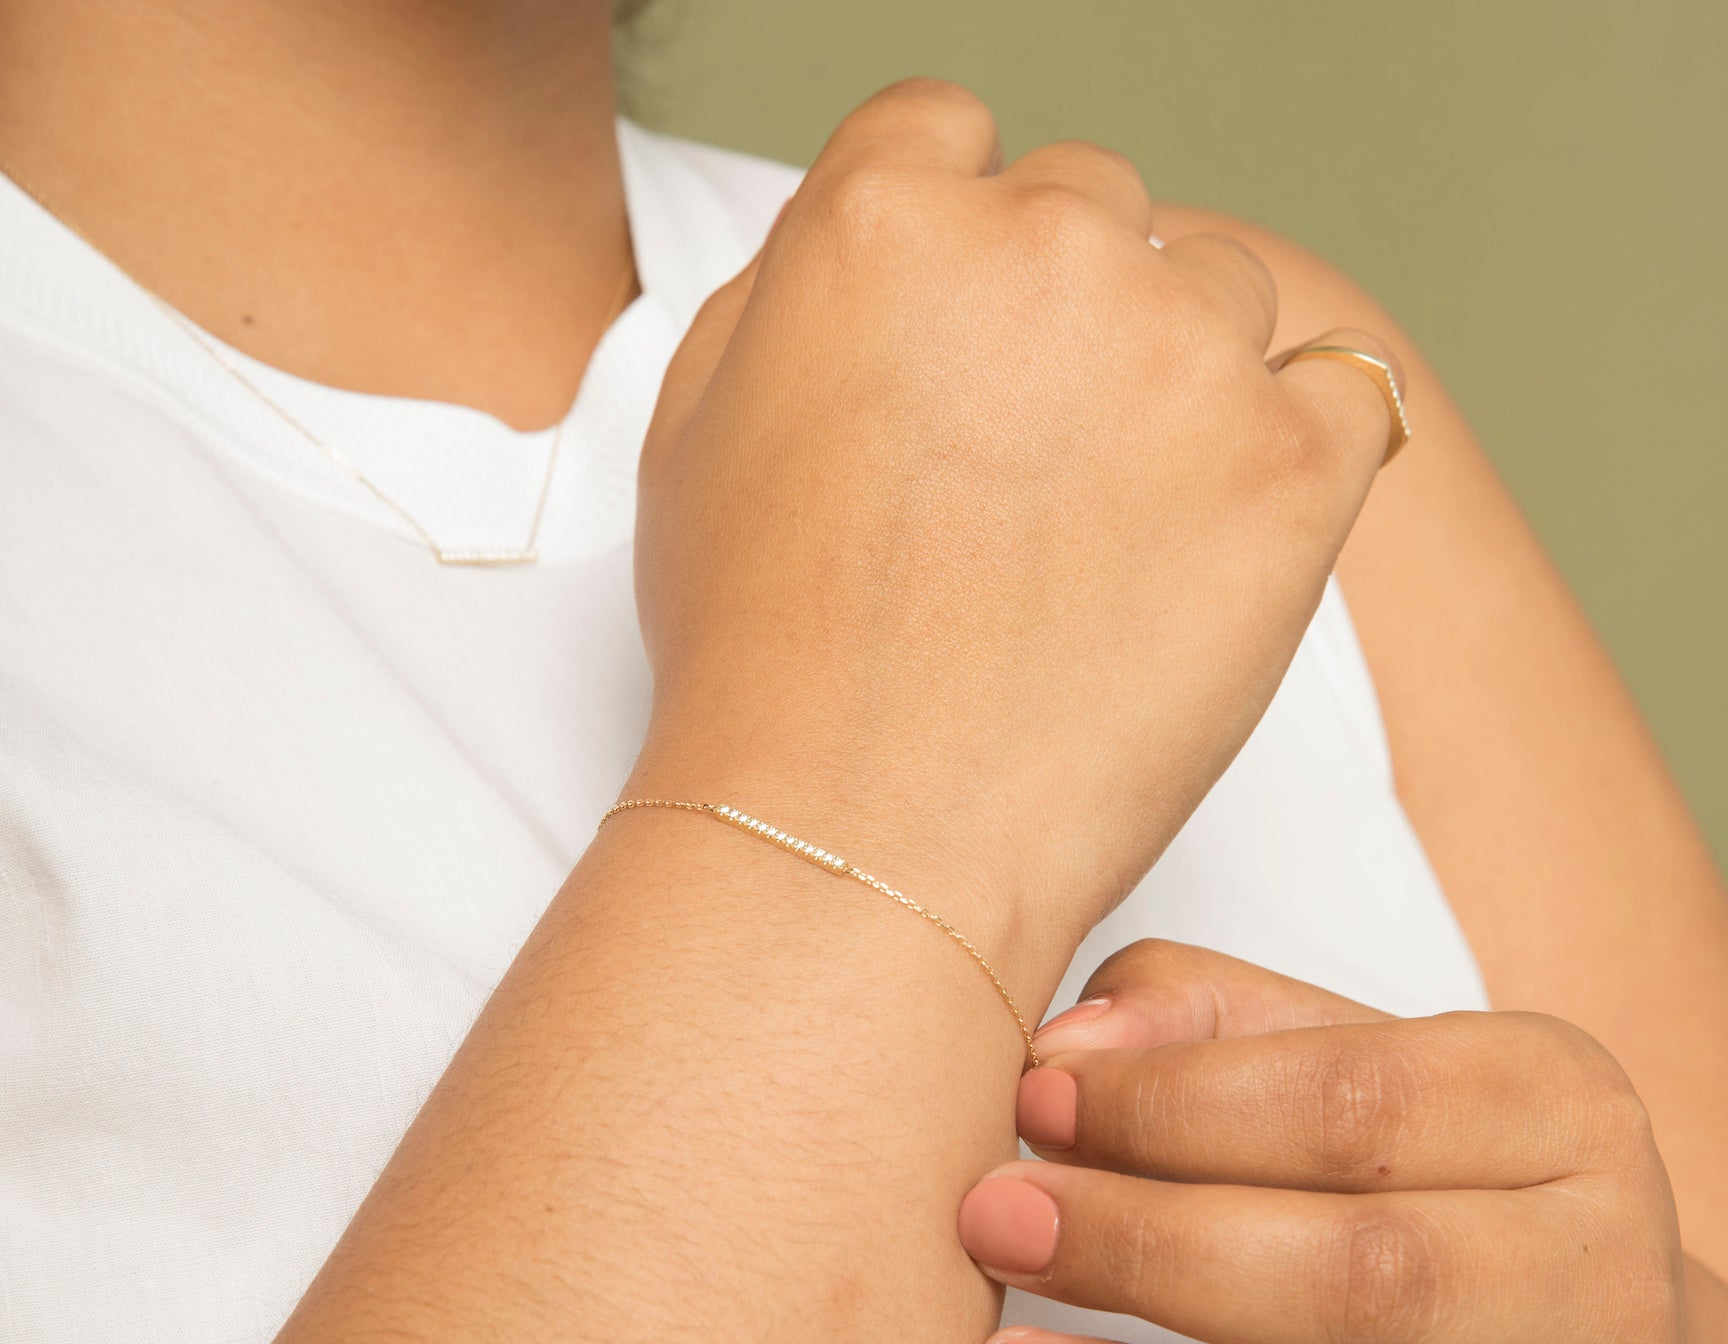 Model wearing sleek Vrai solid gold Line Bracelet with Pave, 14K Rose Gold